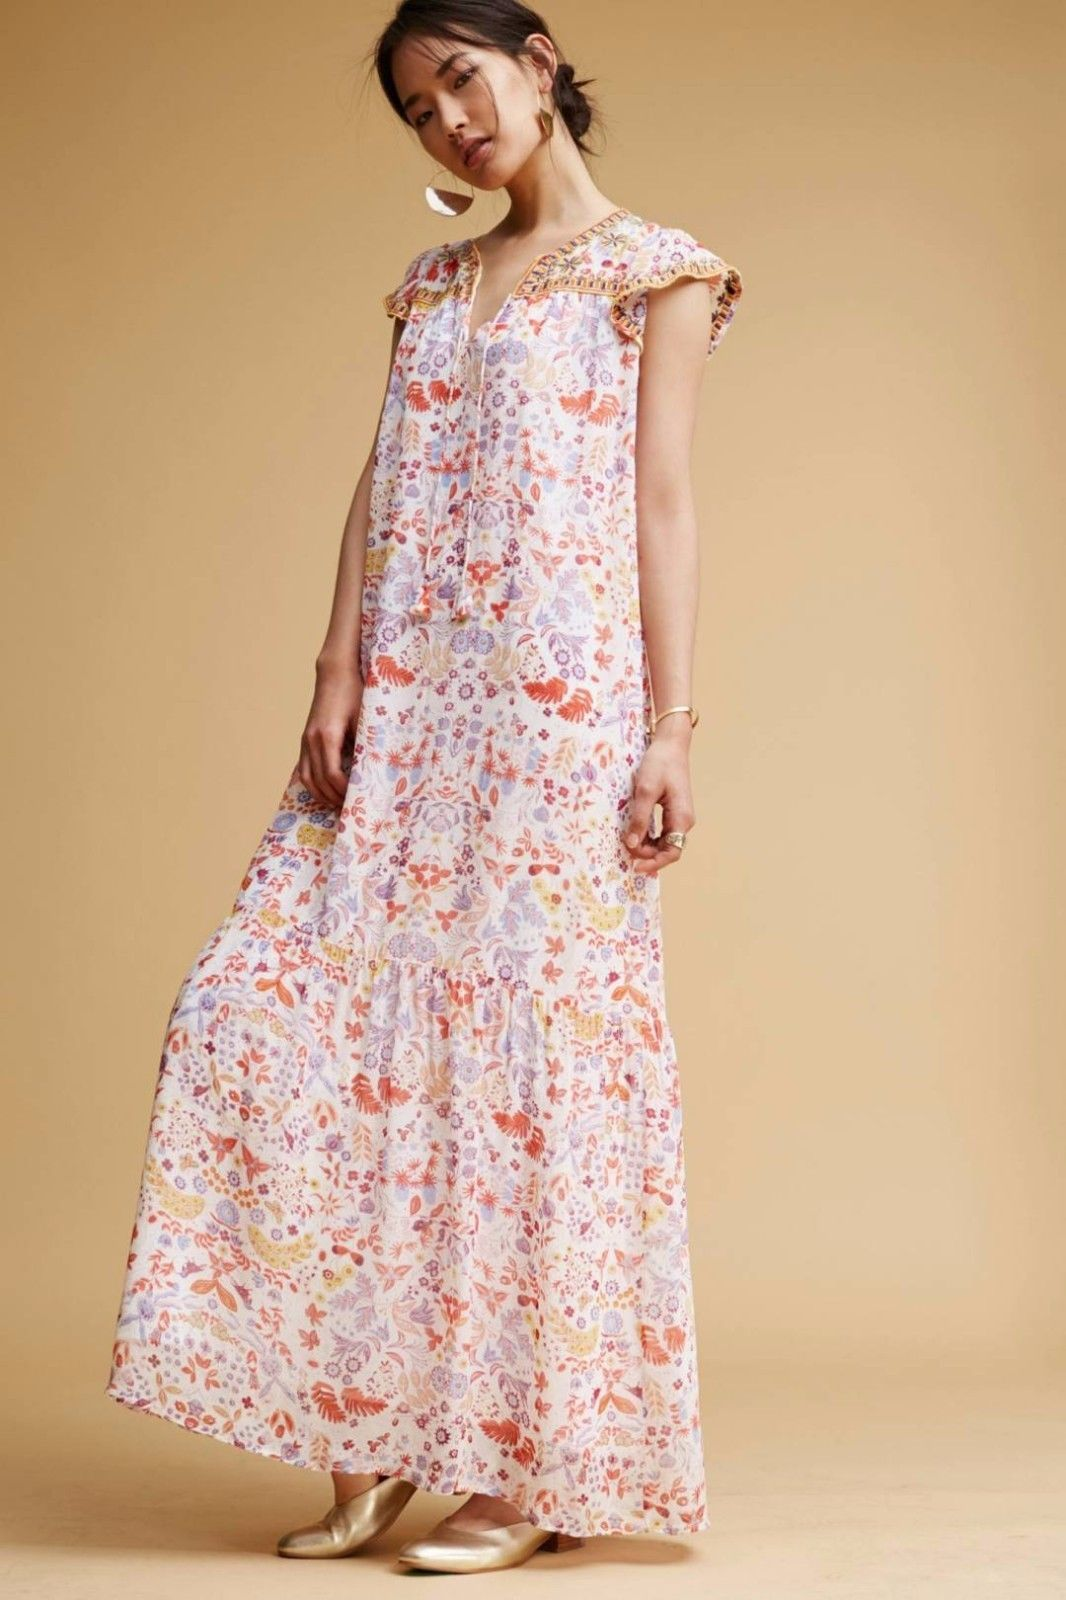 NWT ANTHROPOLOGIE SAMSA MAXI DRESS by ANTIK BATIK PARIS XS, S